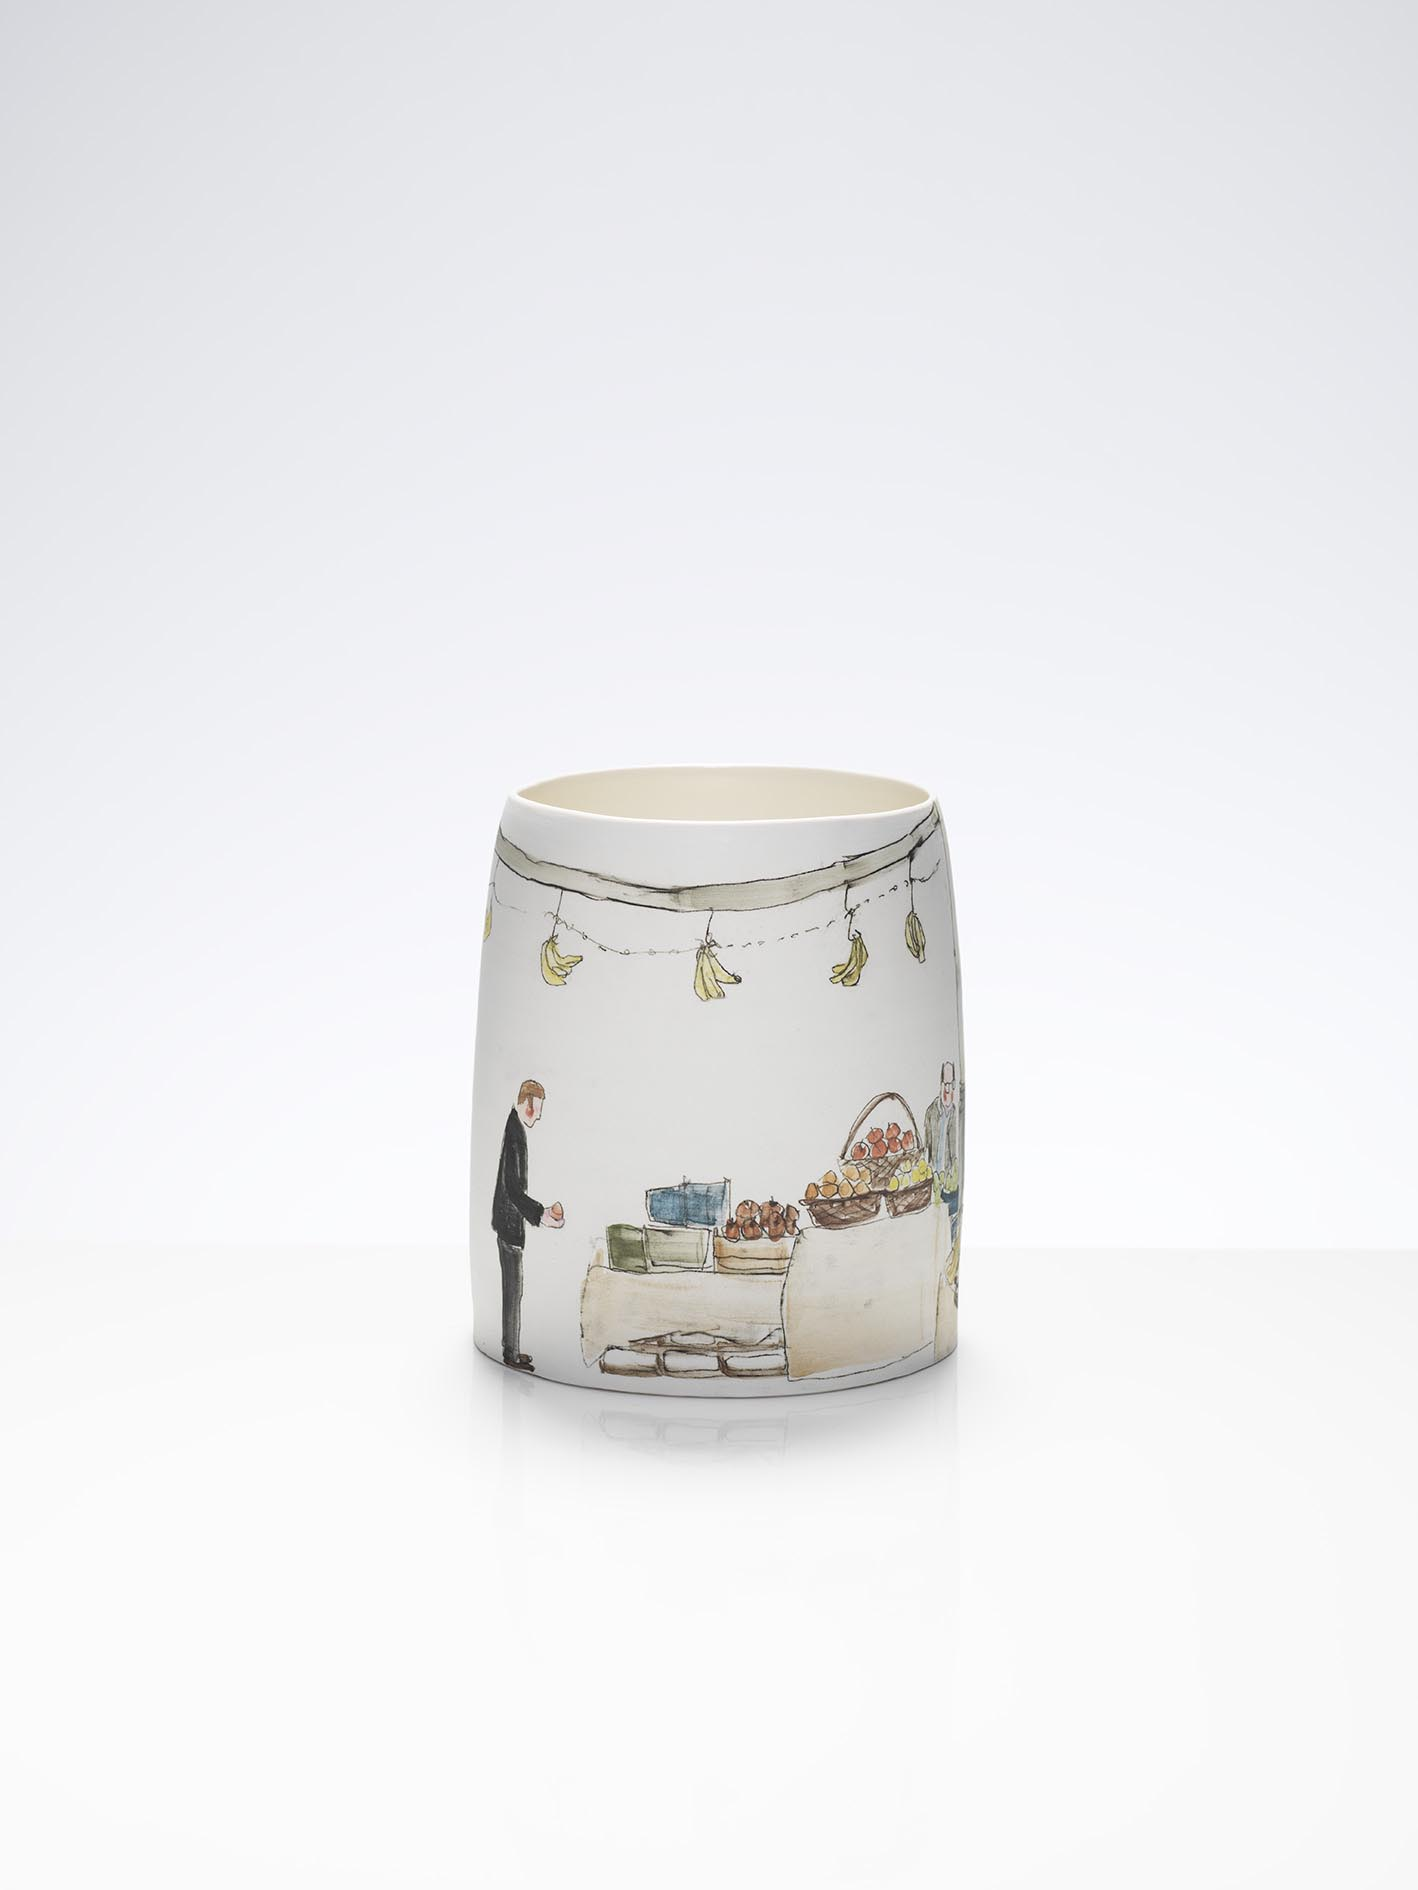 Vegetable Picking at Borough Market, 2012, wheel-thrown and hand-painted porcelain, 25cm height